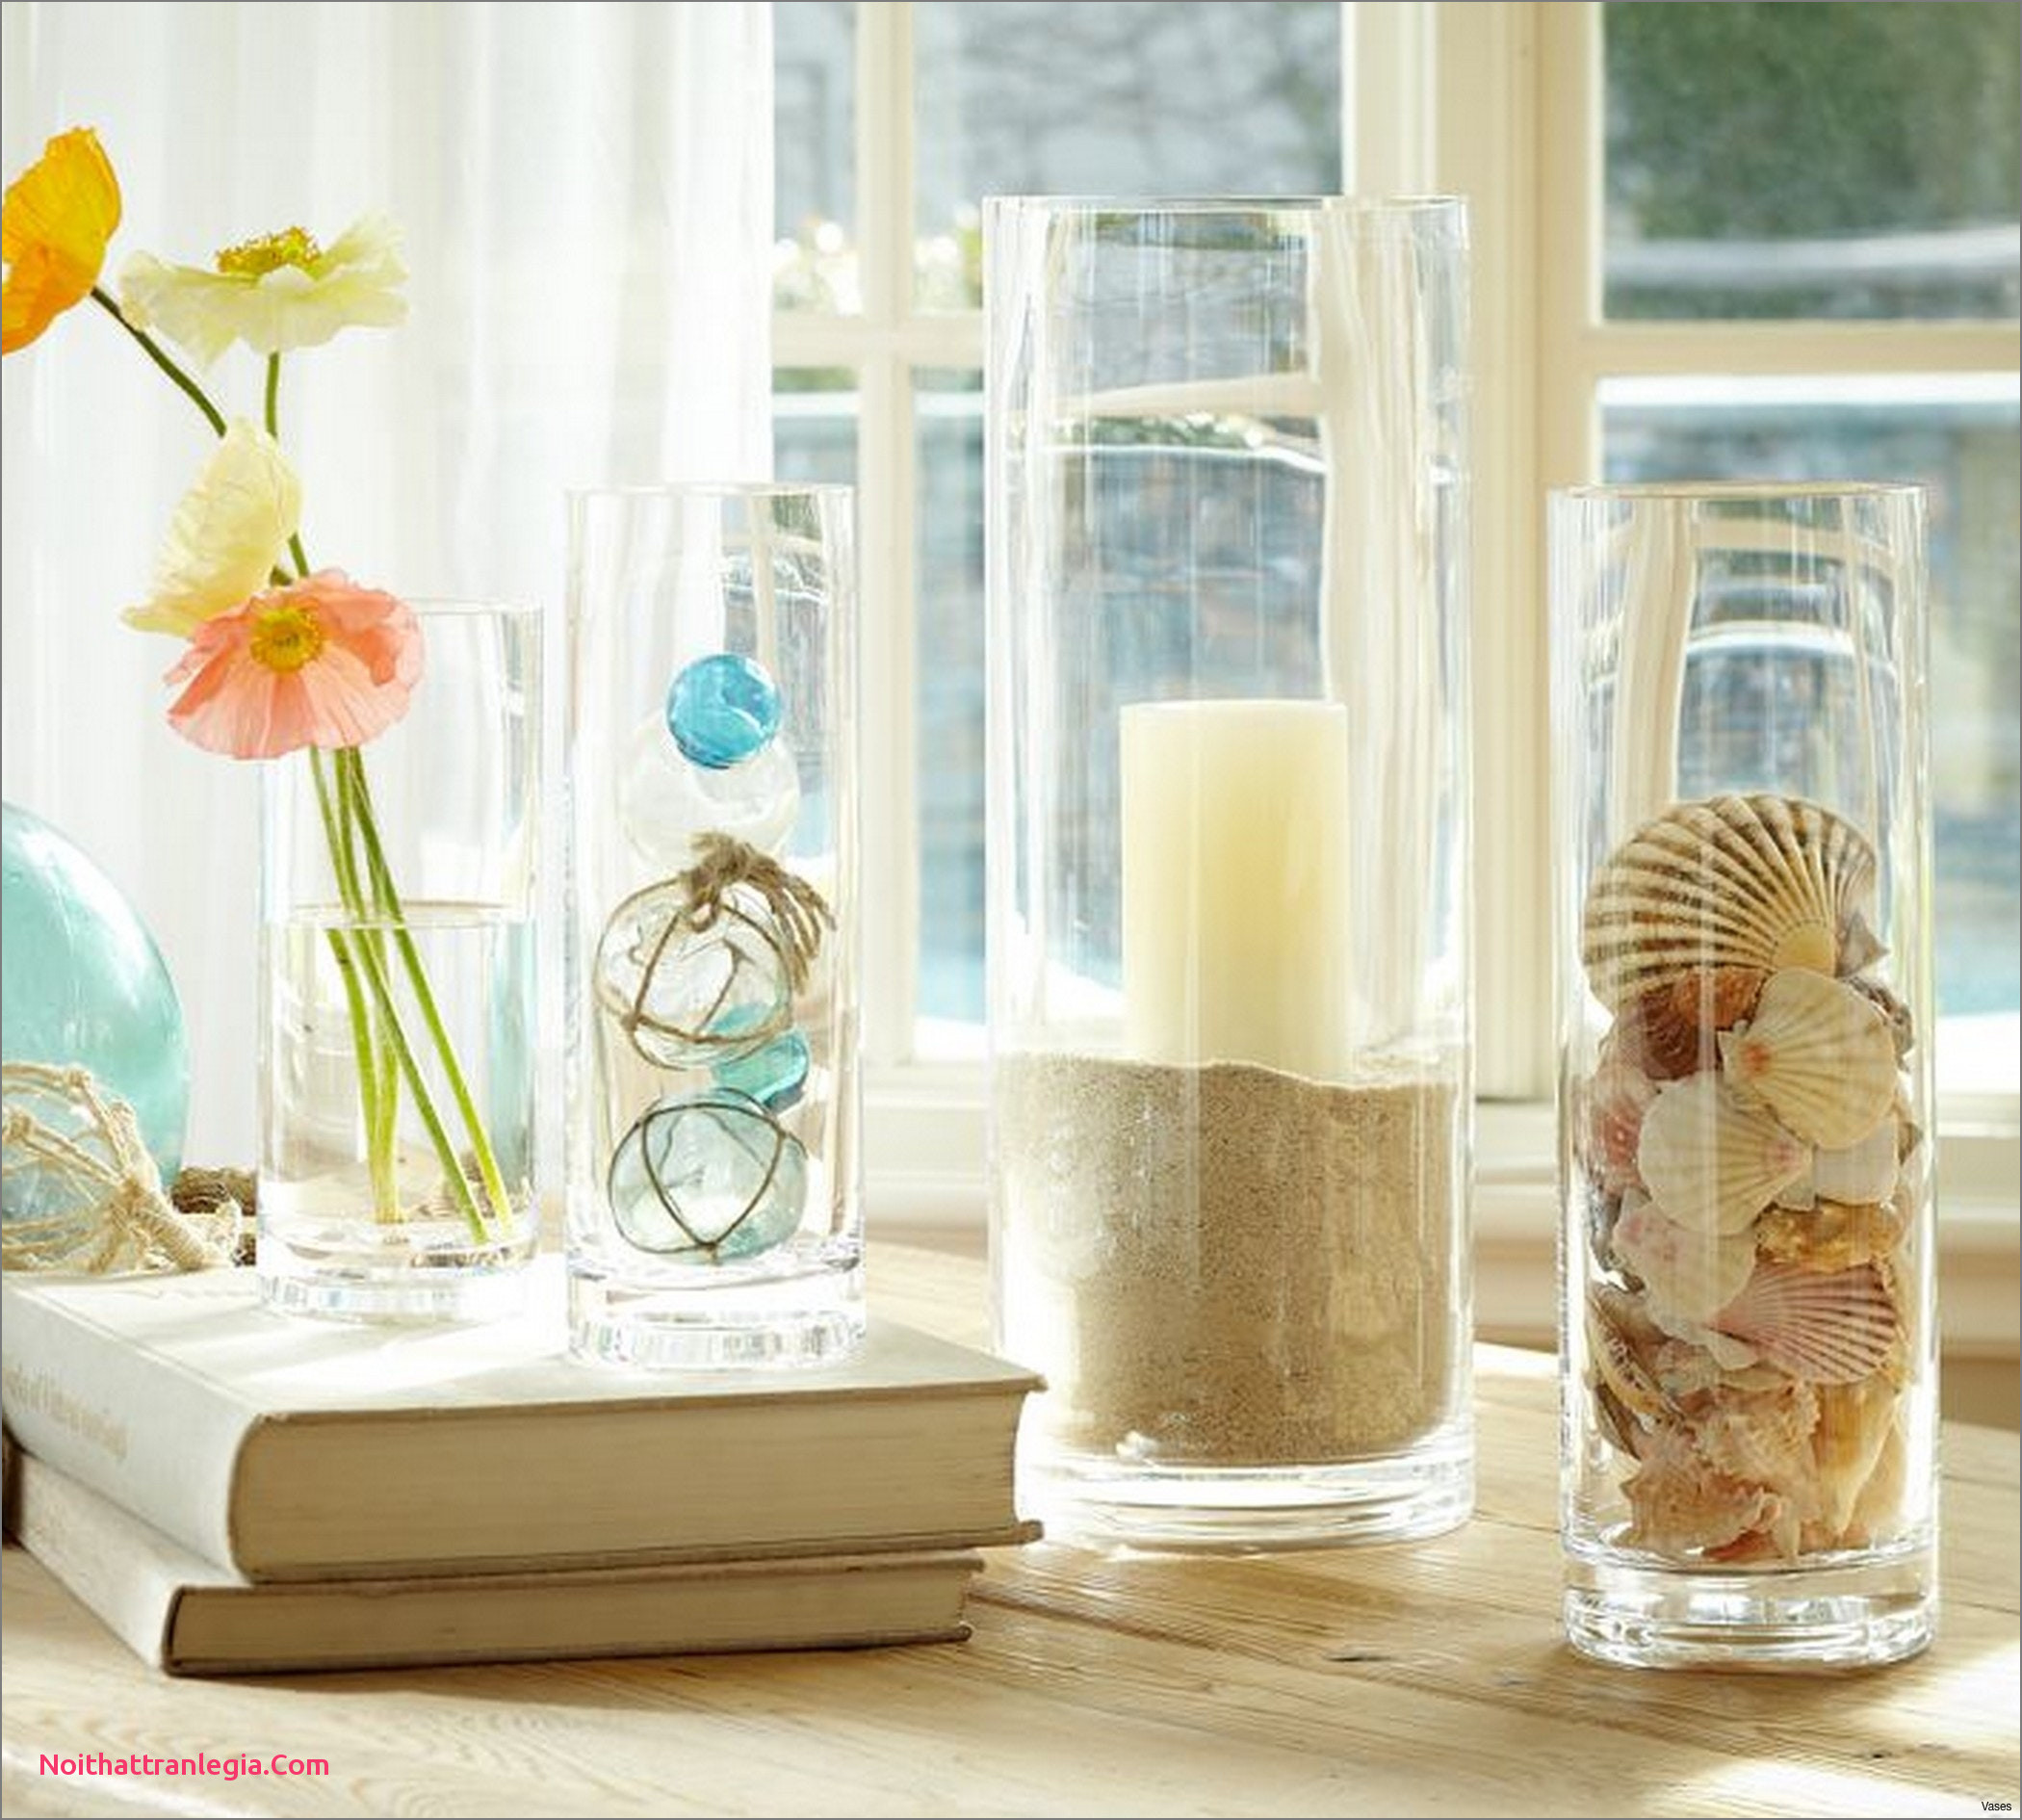 clear plastic cylinder vases bulk of 20 how to make mercury glass vases noithattranlegia vases design for glass vase fillers vase filler ideas 5h vases summer 5i 0d inspiration vase